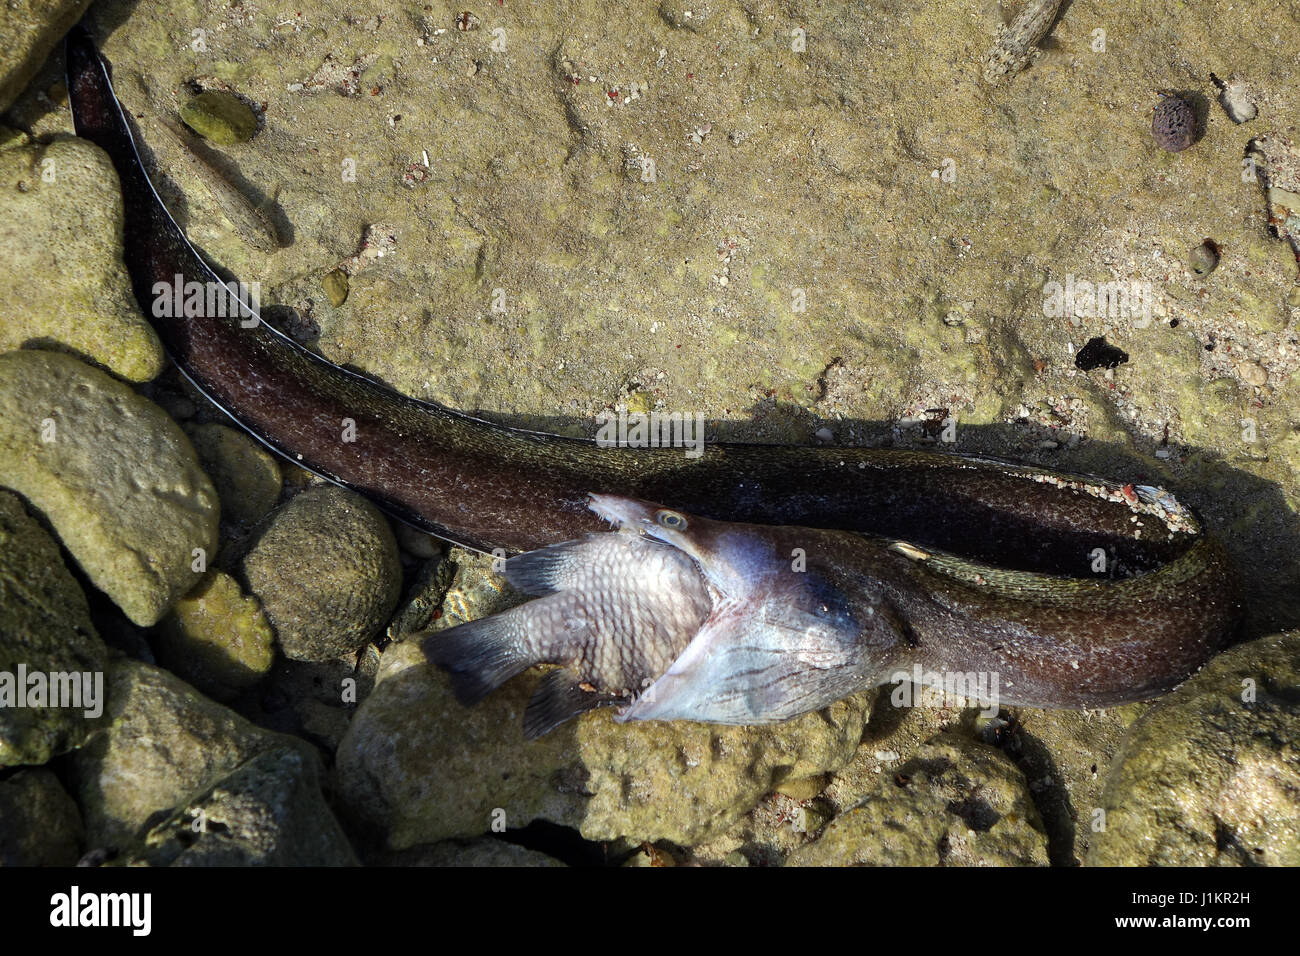 Moray eal captured a  big fish, both died. - Stock Image